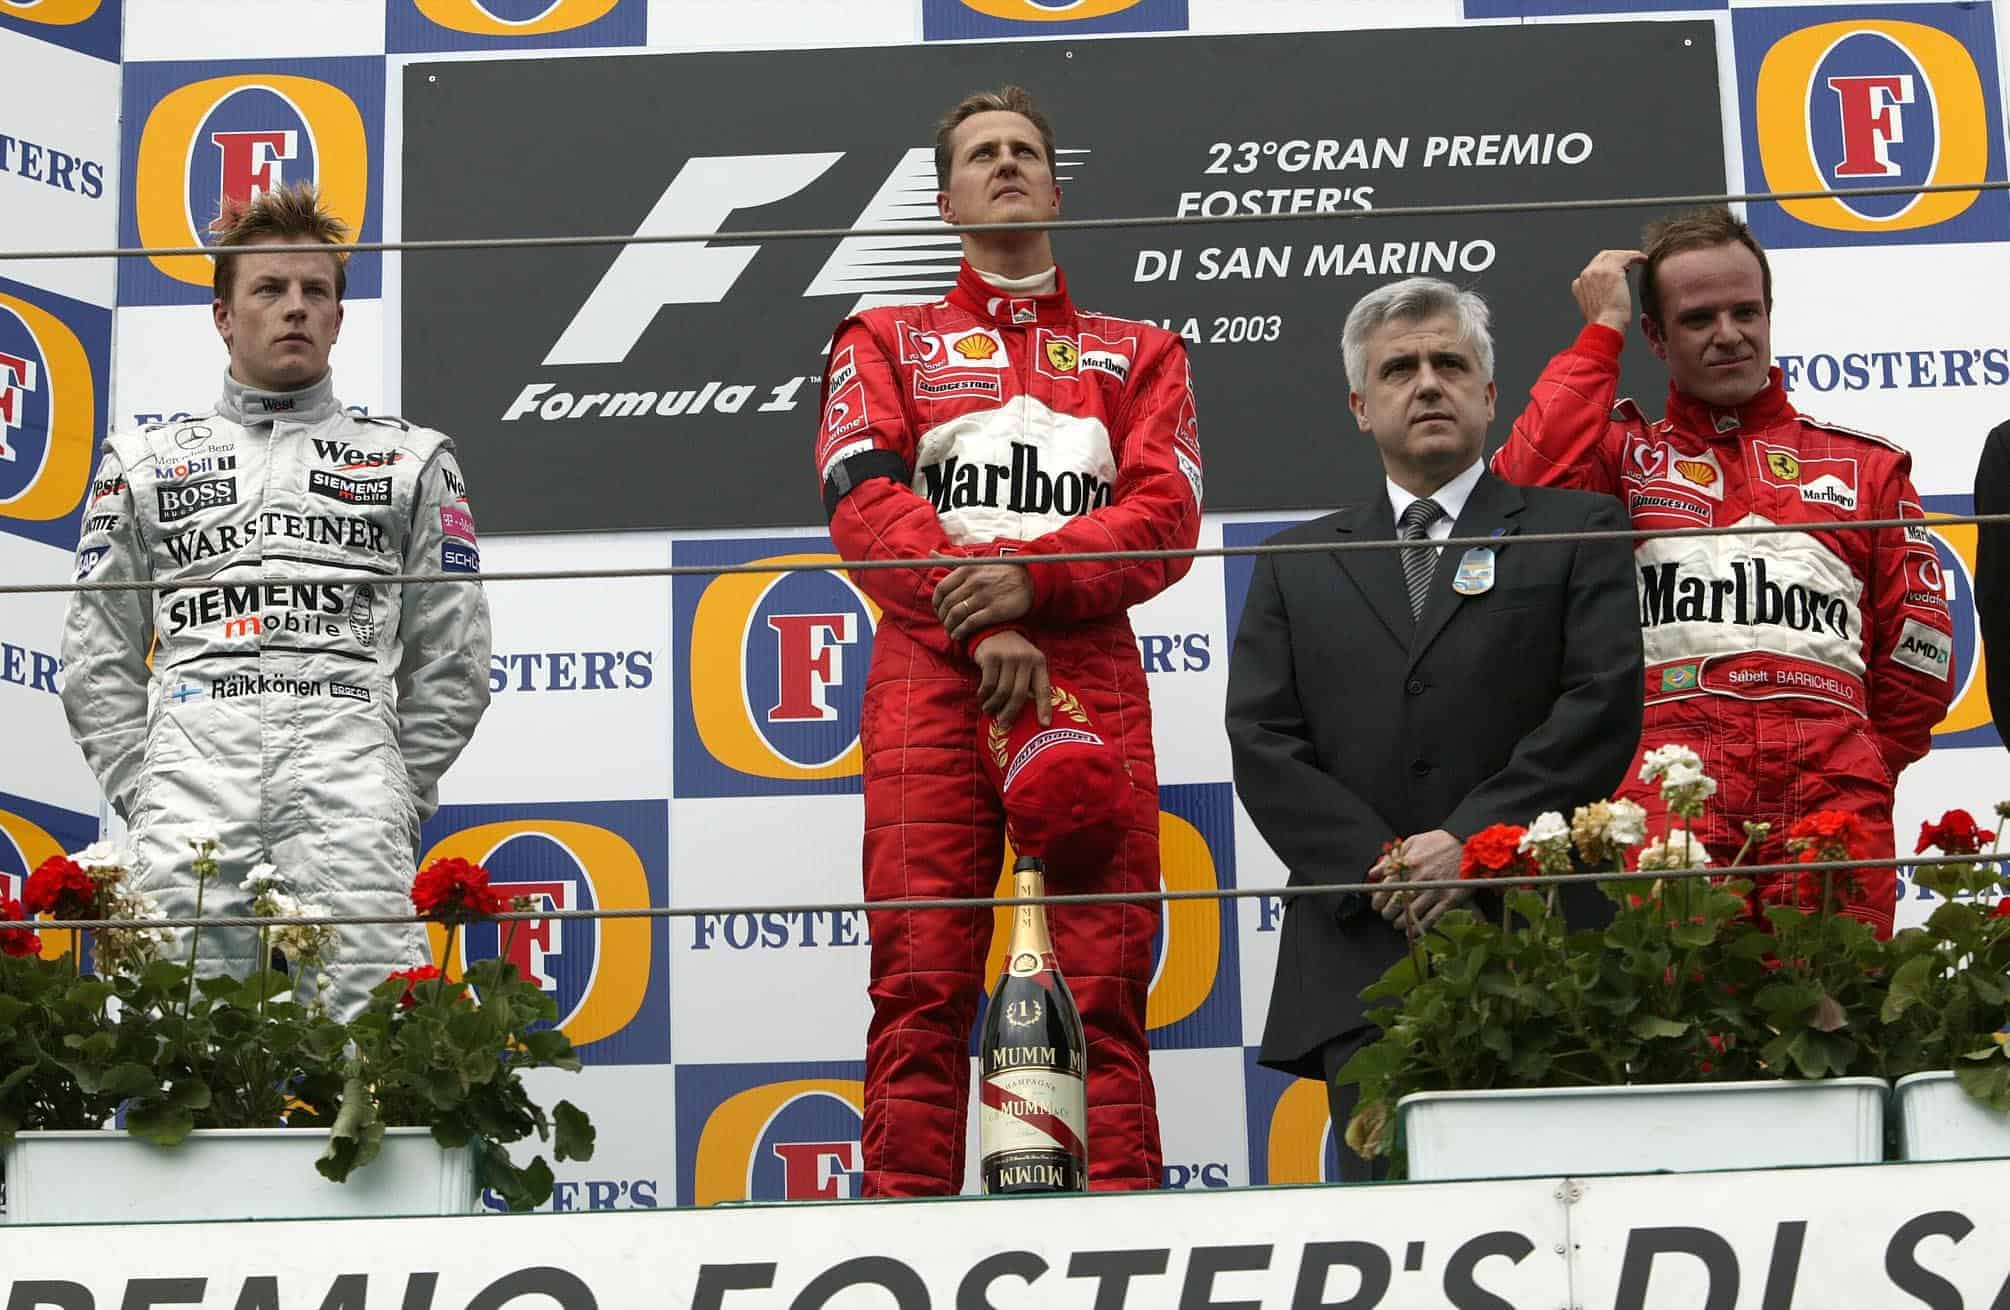 San Marino GP F1 2003 Imola podium Schumacher Raikkonen Barrichello Photo Ferrari